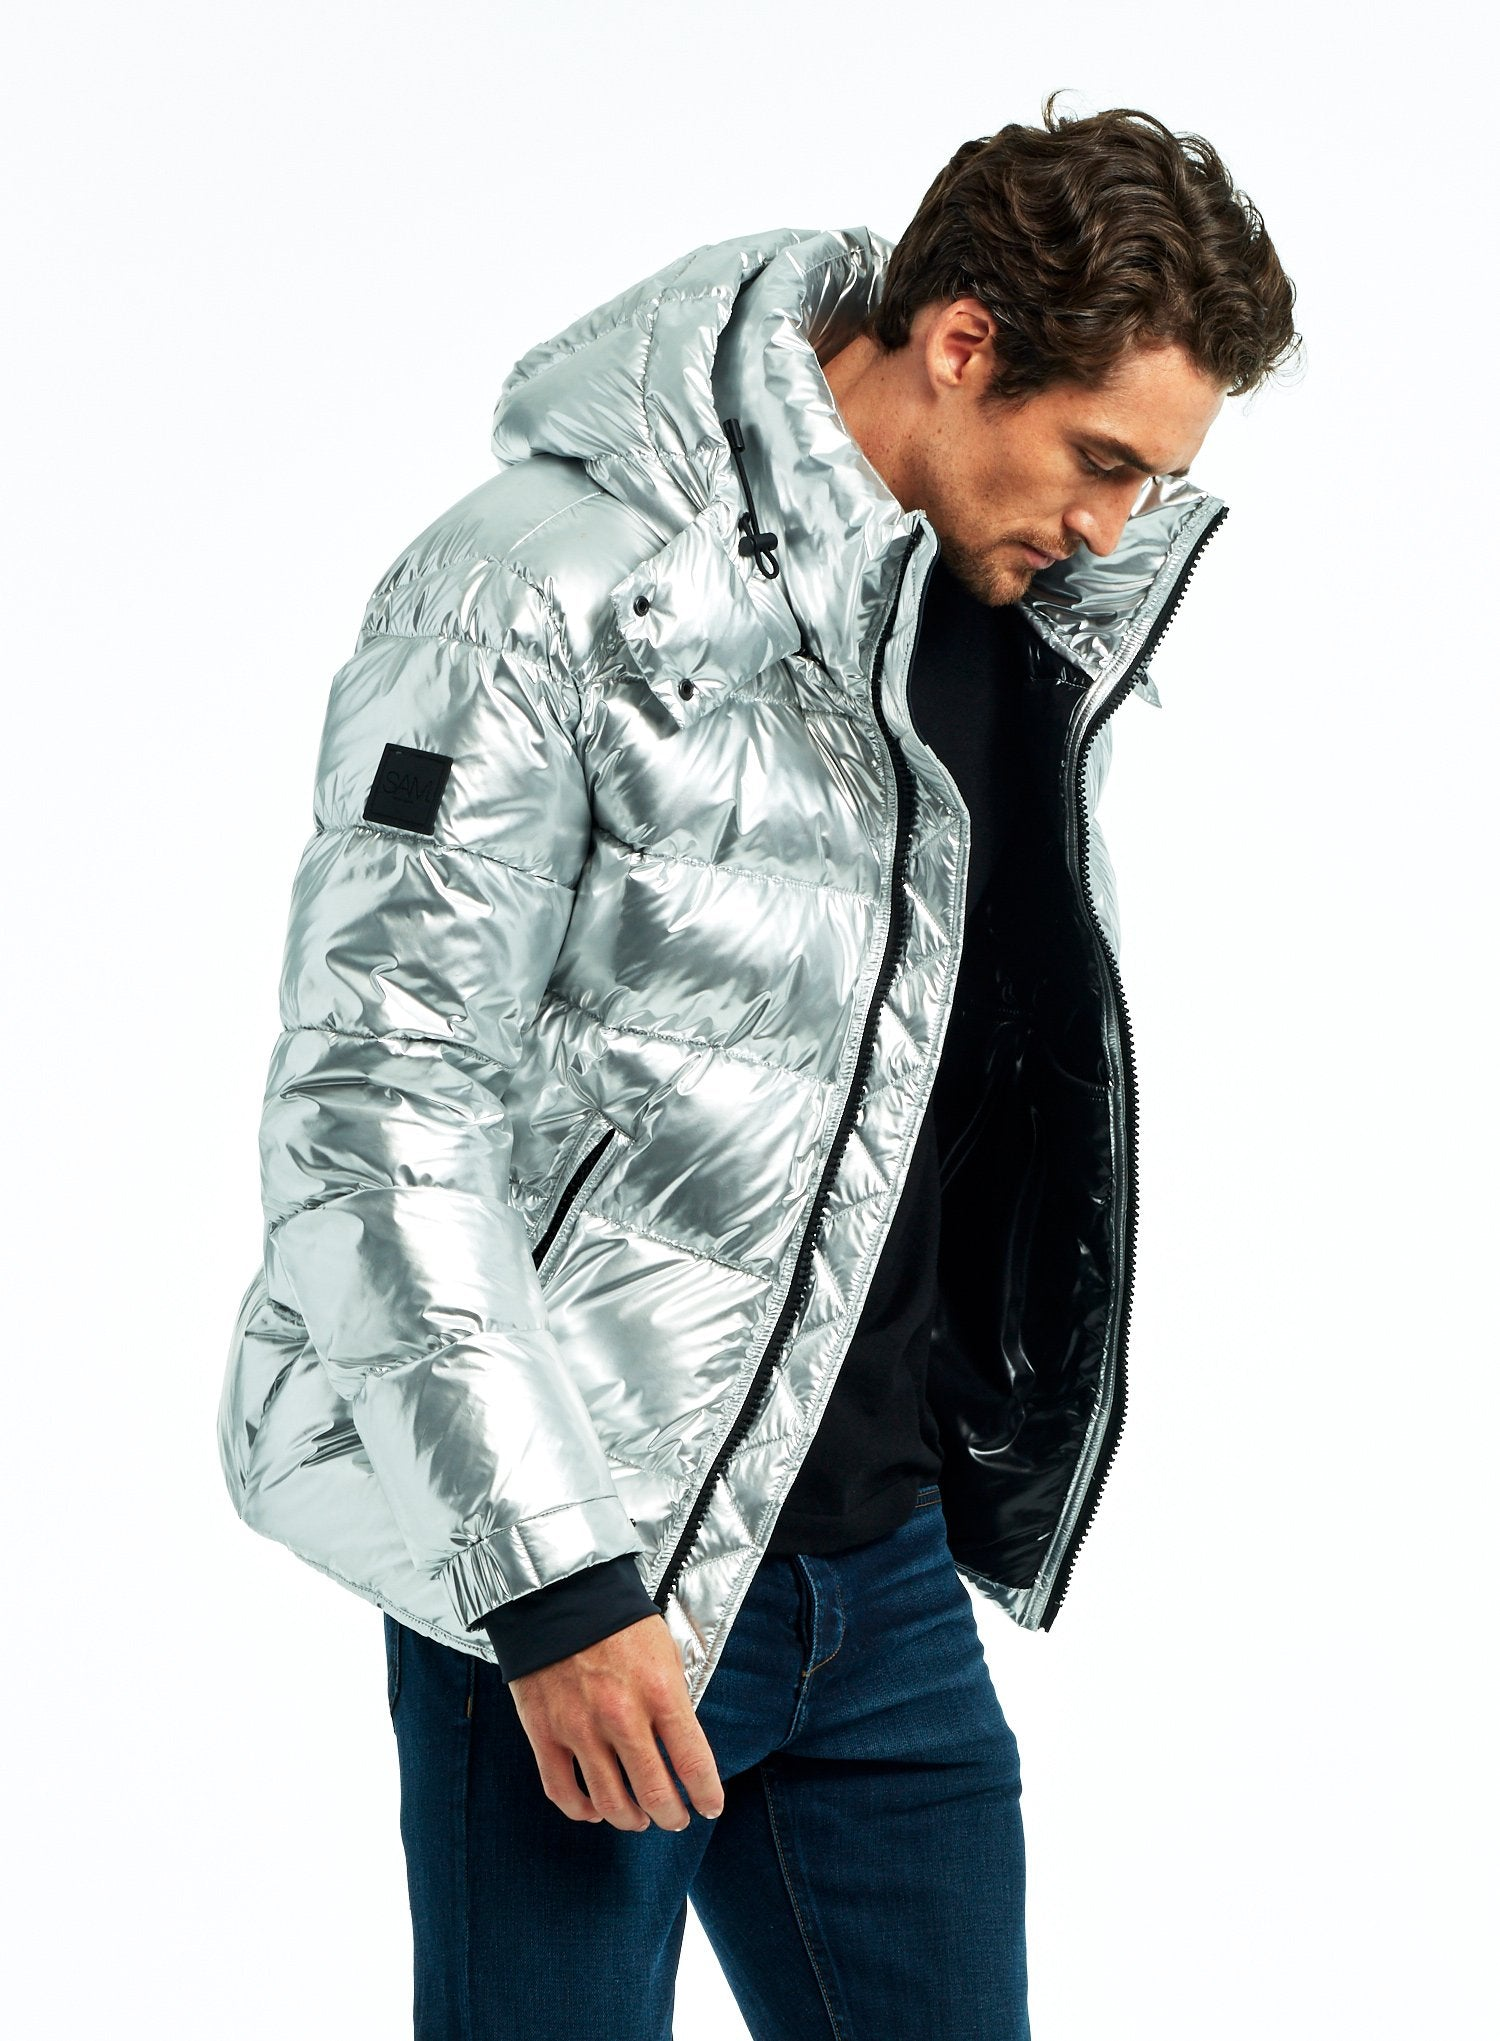 GLACIER GLACIER - SAM. New York Sam nyc jacket